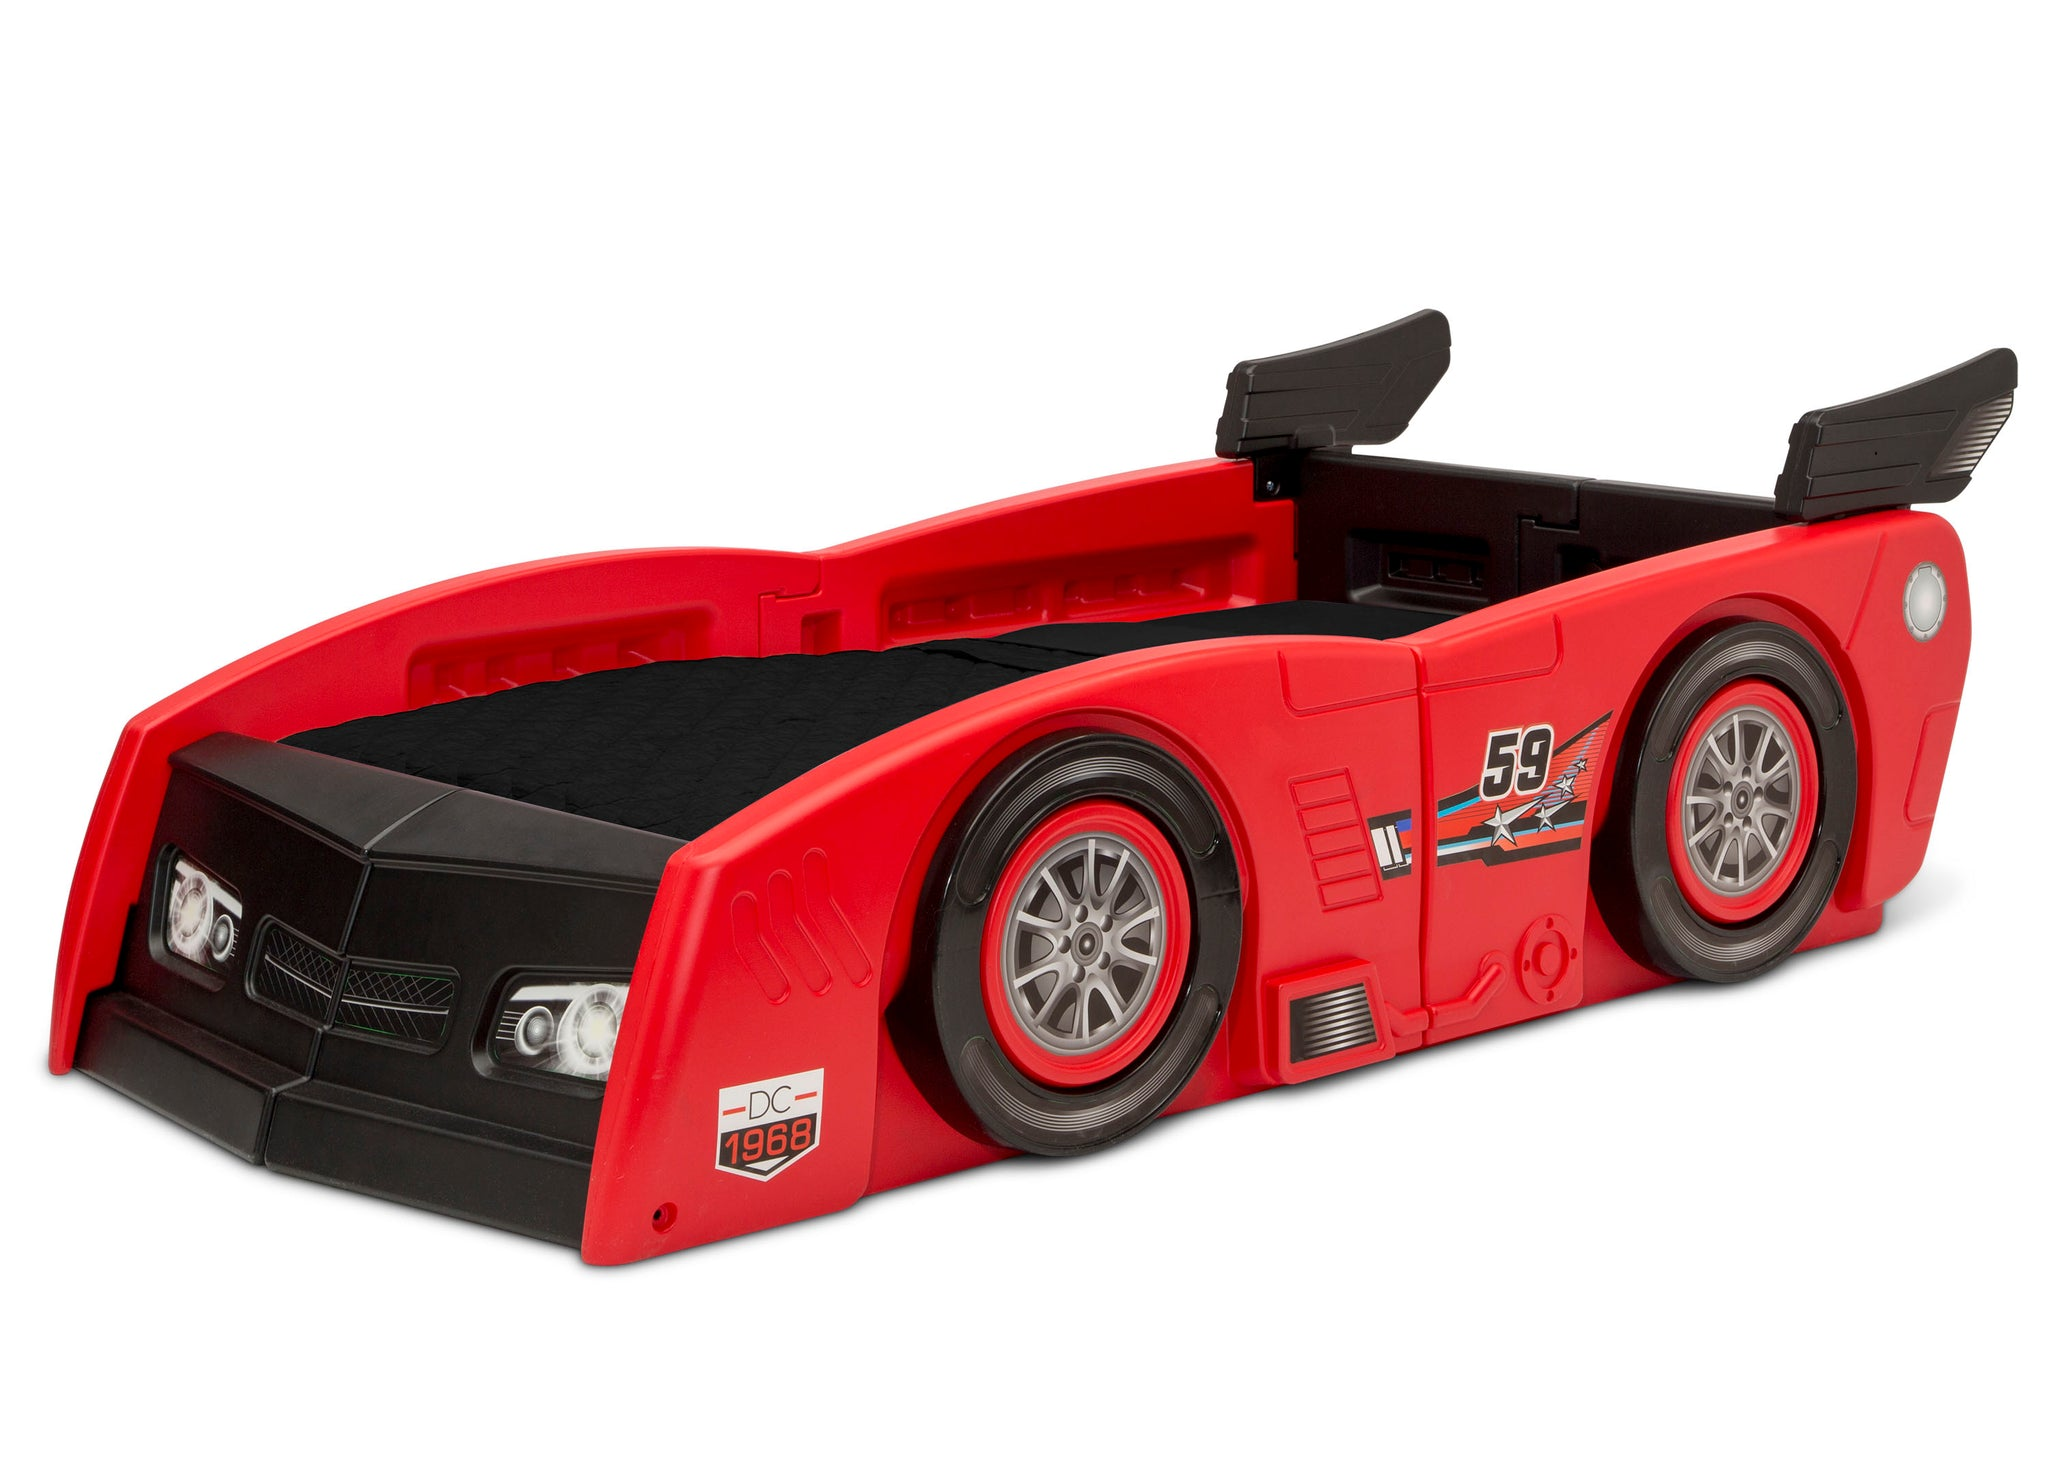 Delta Children Red & Black (620) Grand Prix Race Car Toddler-to-Twin Bed, Toddler Left Silo View